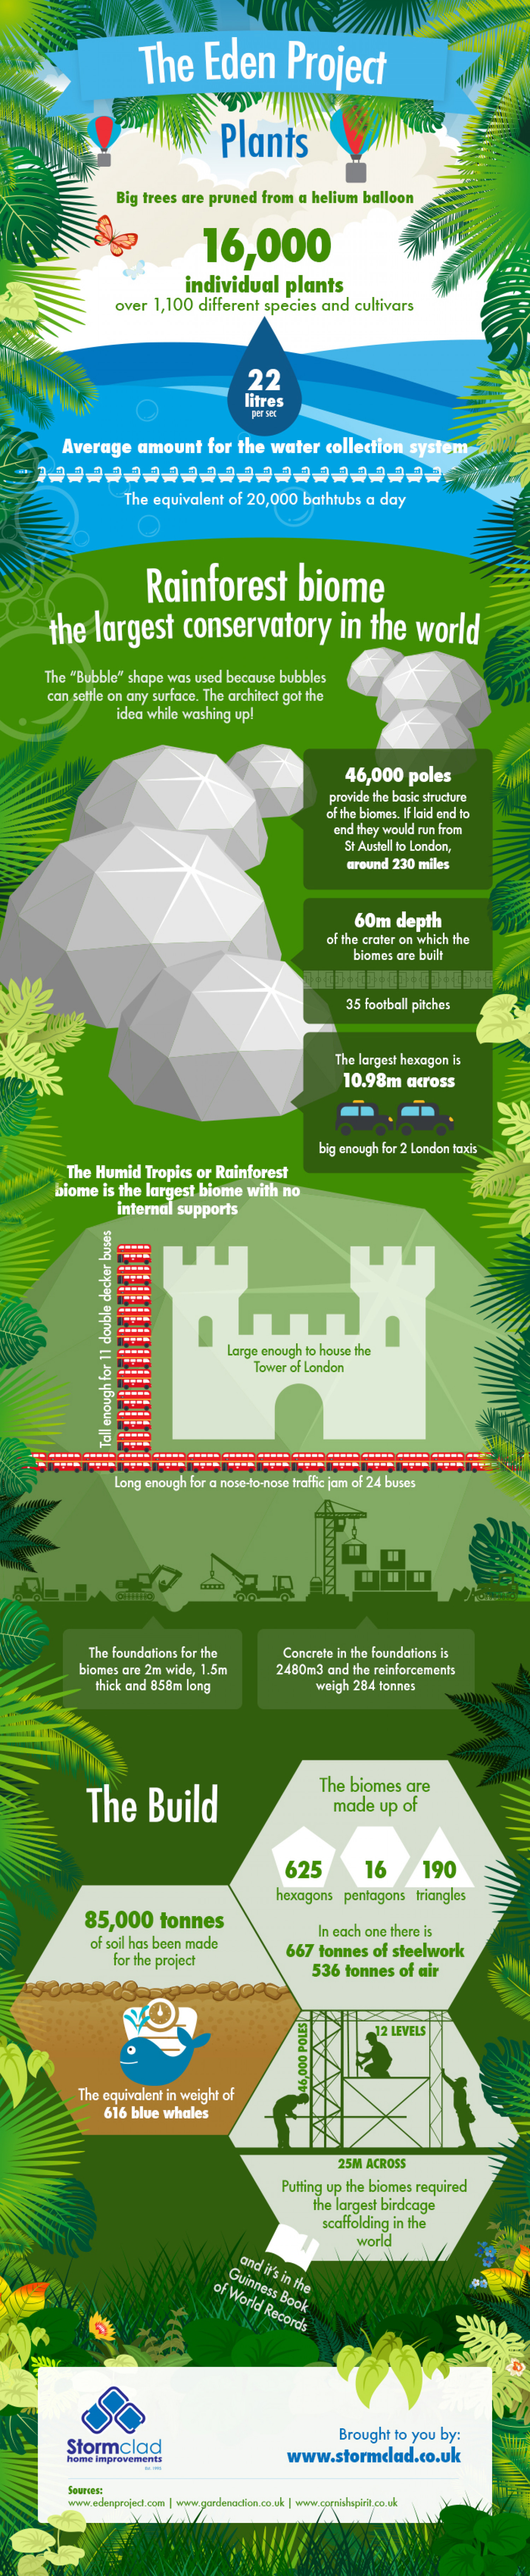 The Eden Project Infographic